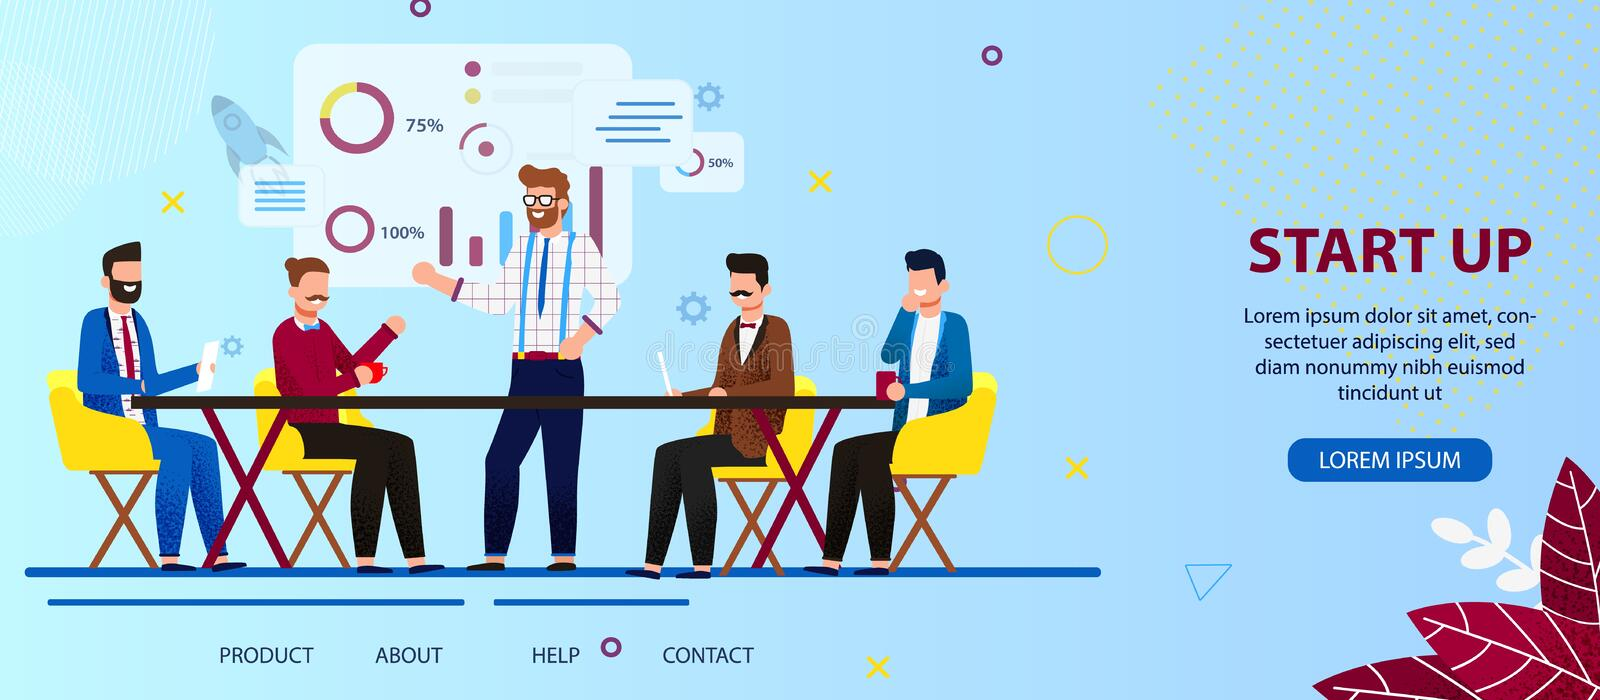 Business People Team Work on Start Up Technology. royalty free illustration